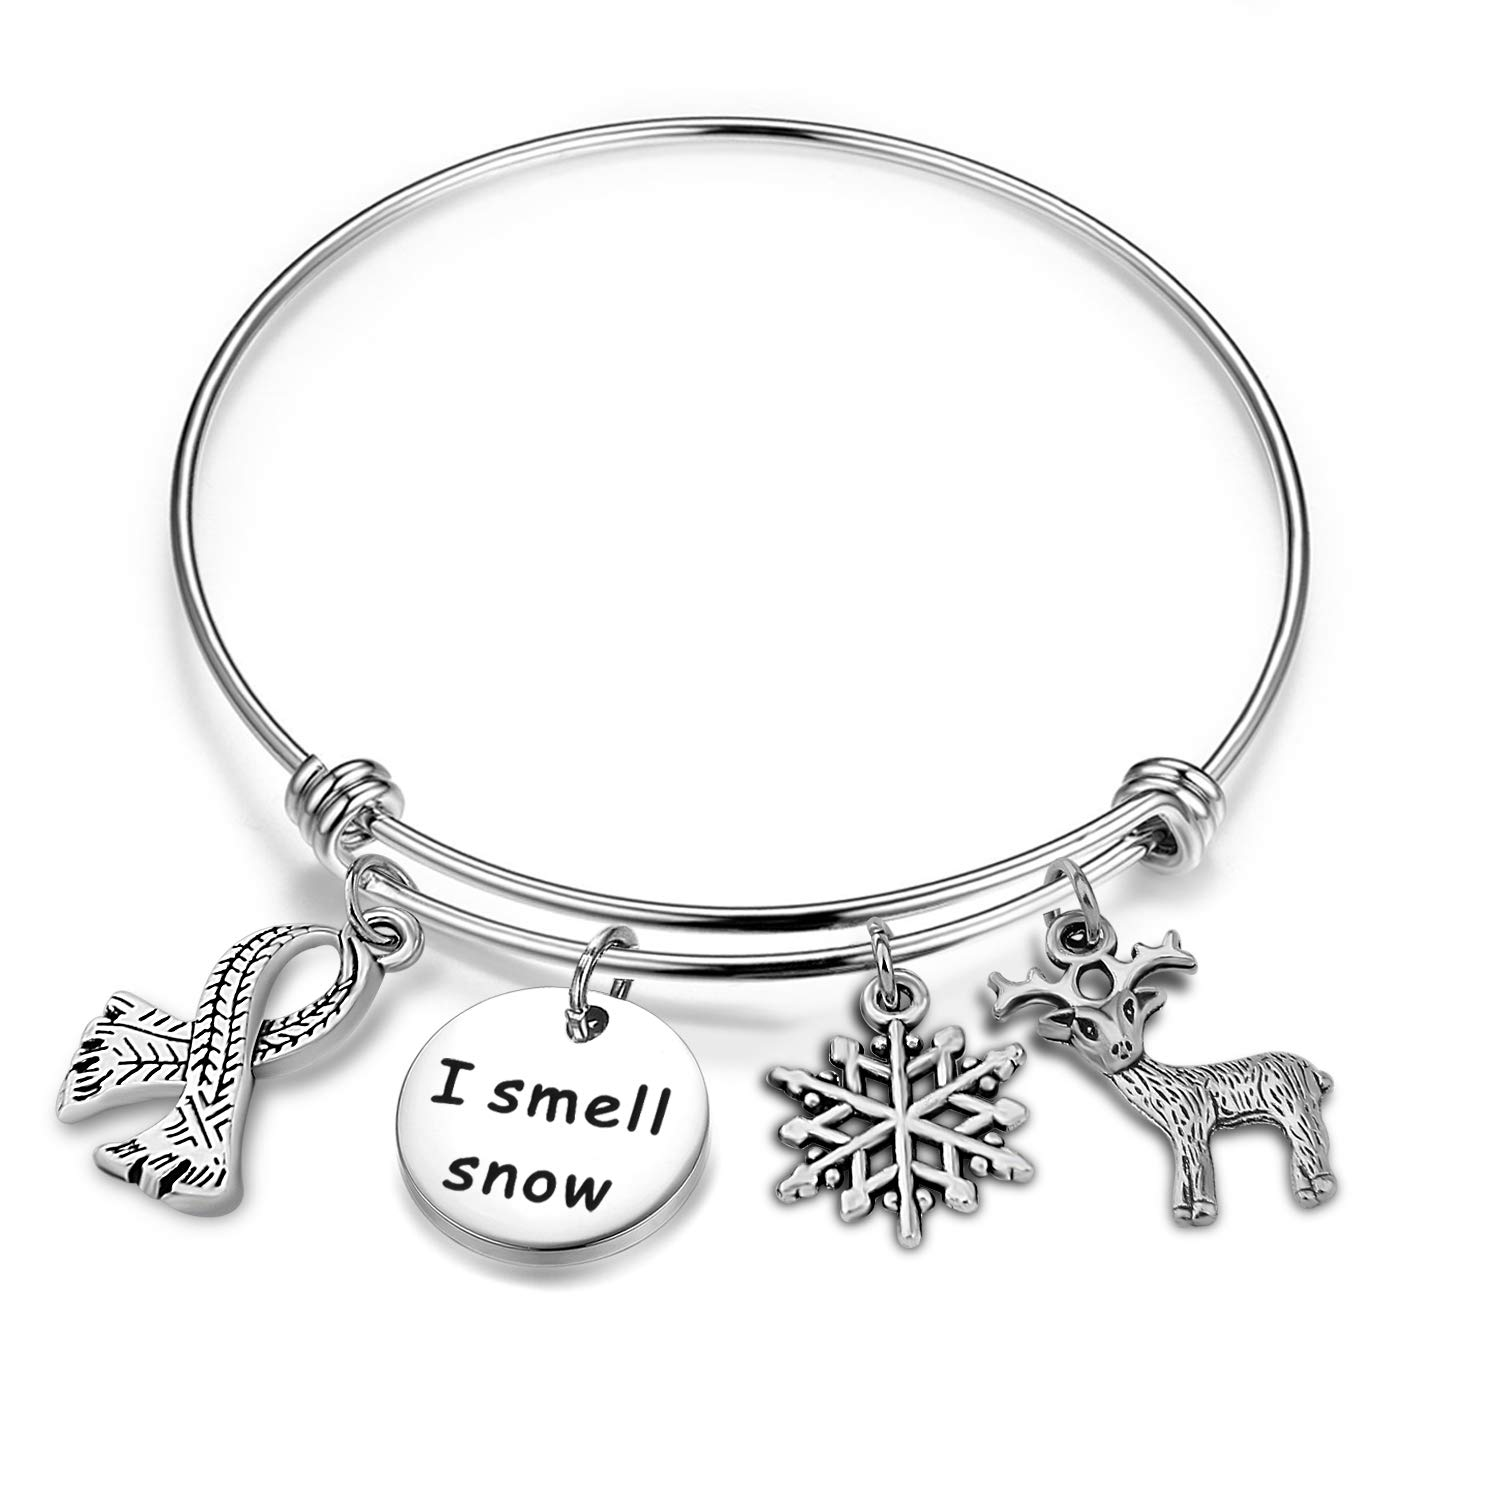 SEIRAA Christmas Bracelet I Smell Snow Holiday Jewelry Winter Gift Her